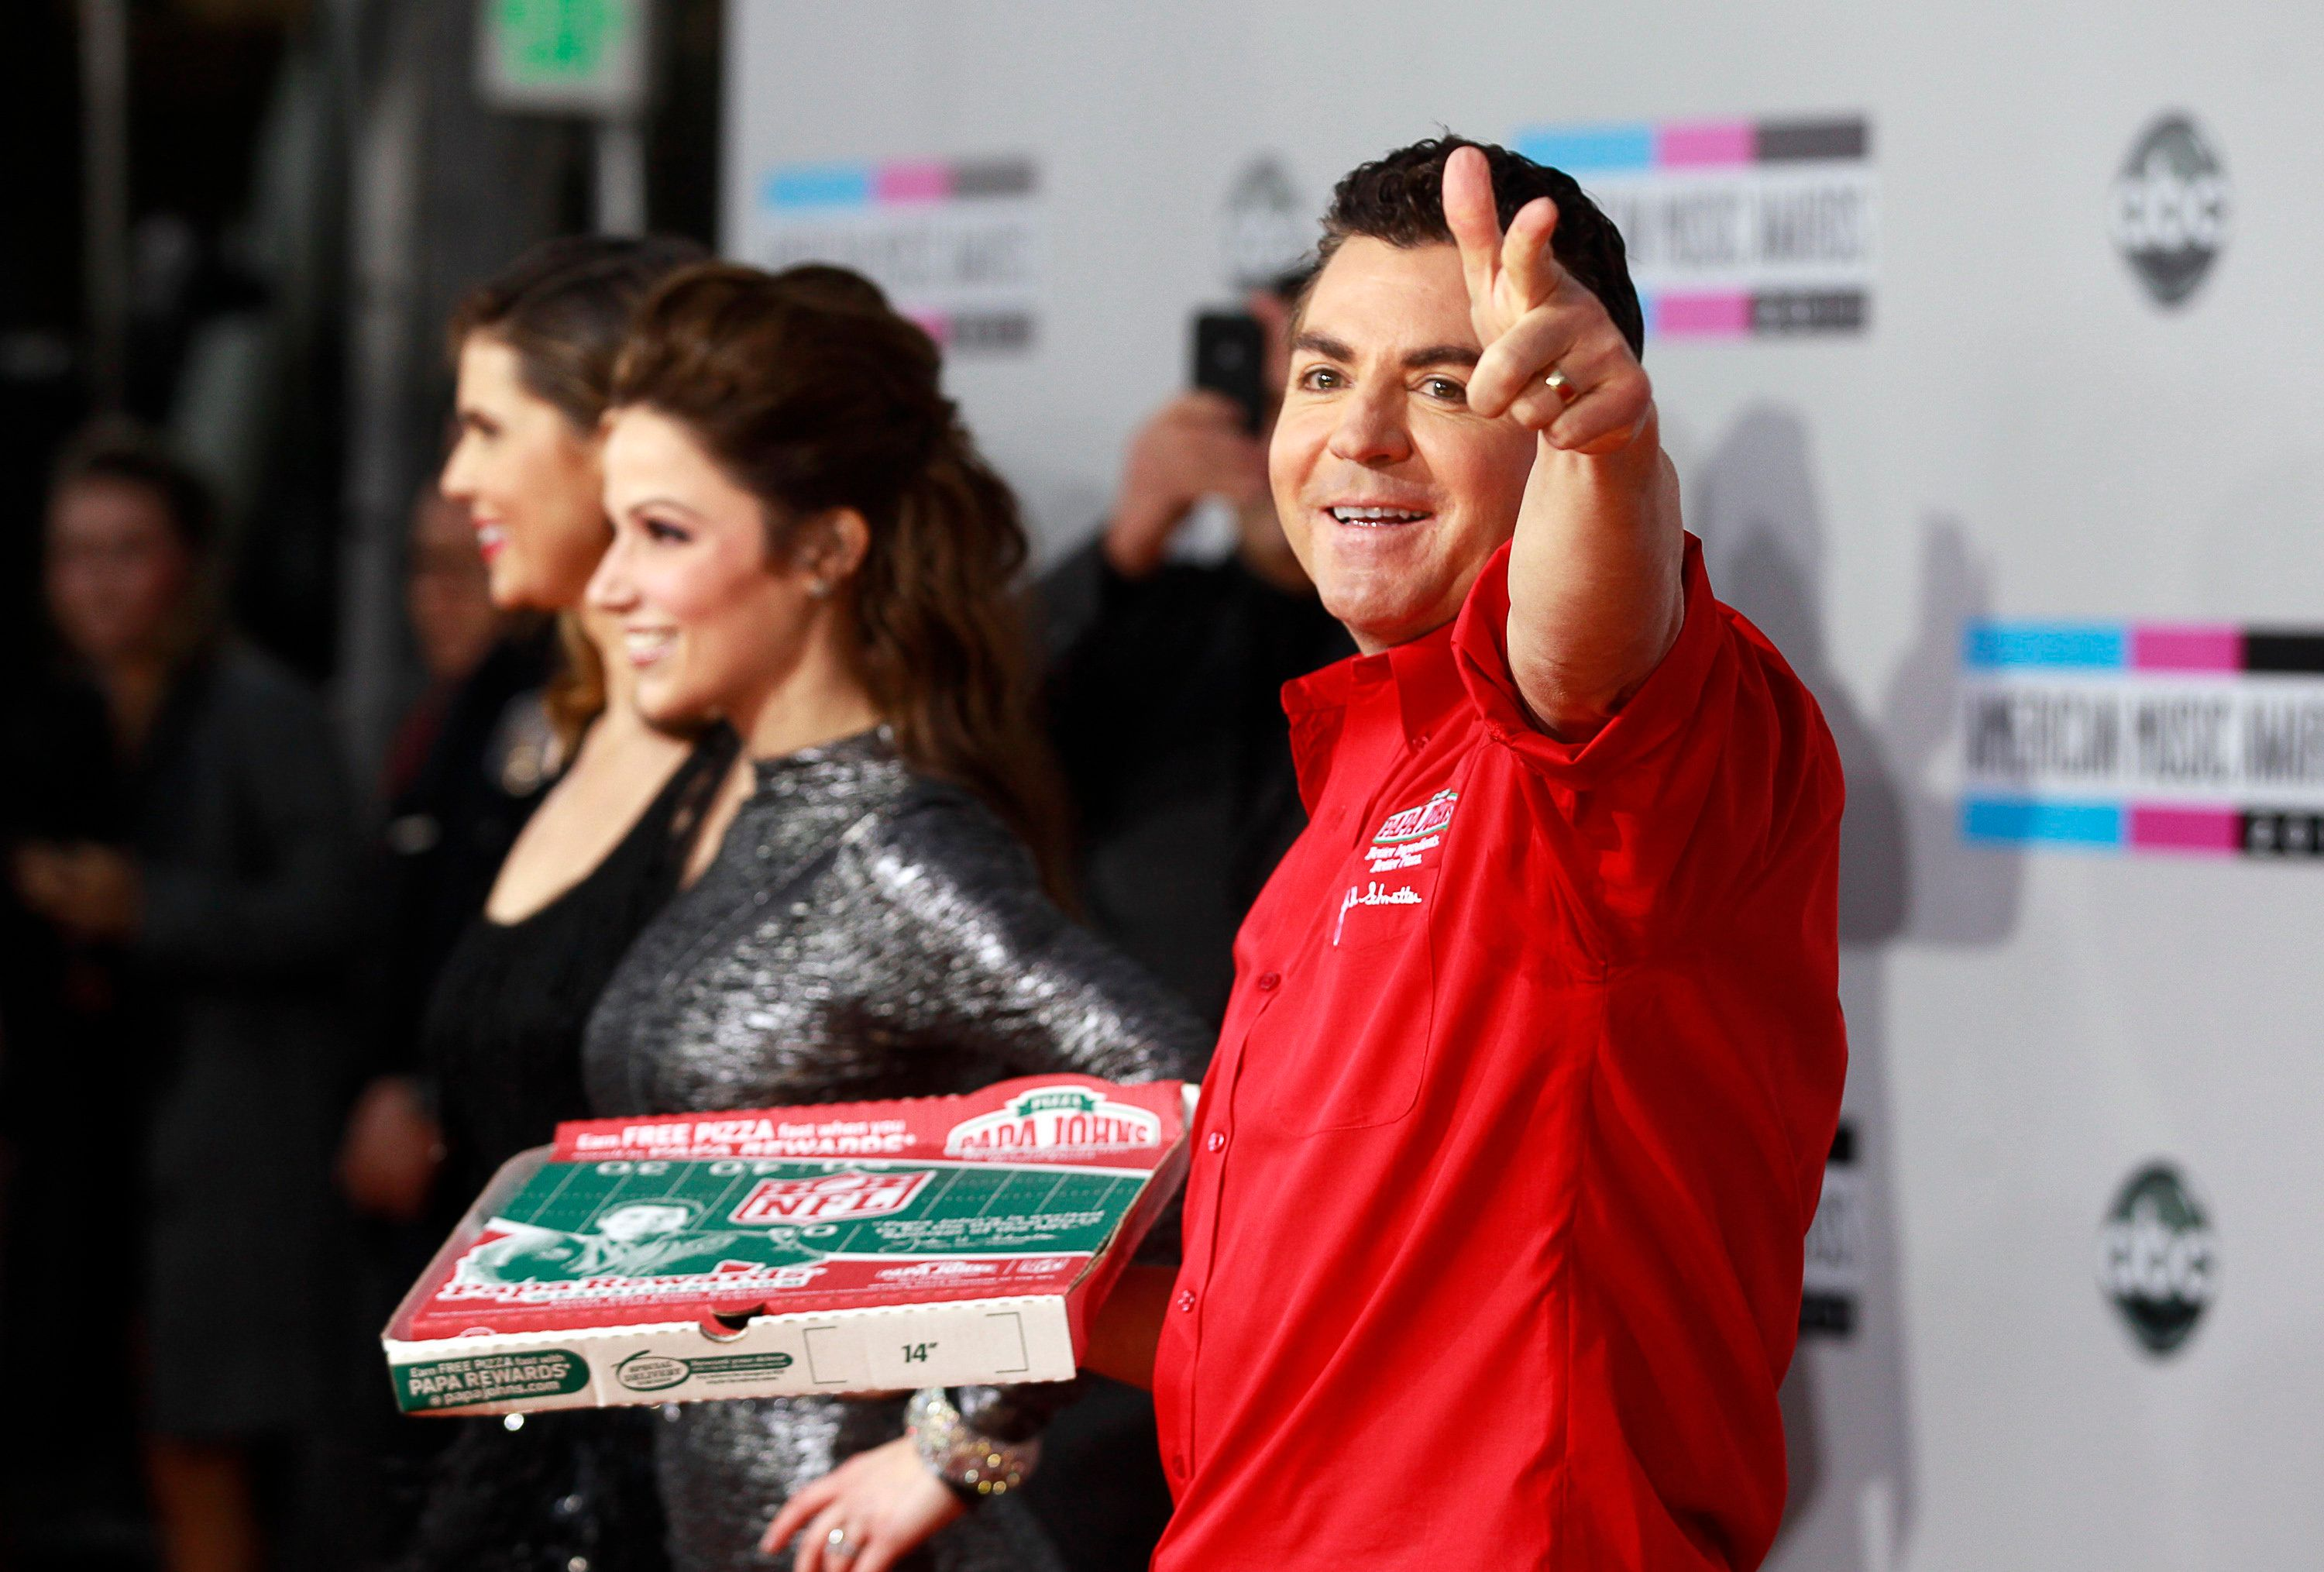 Papa John's founder to quit as CEO